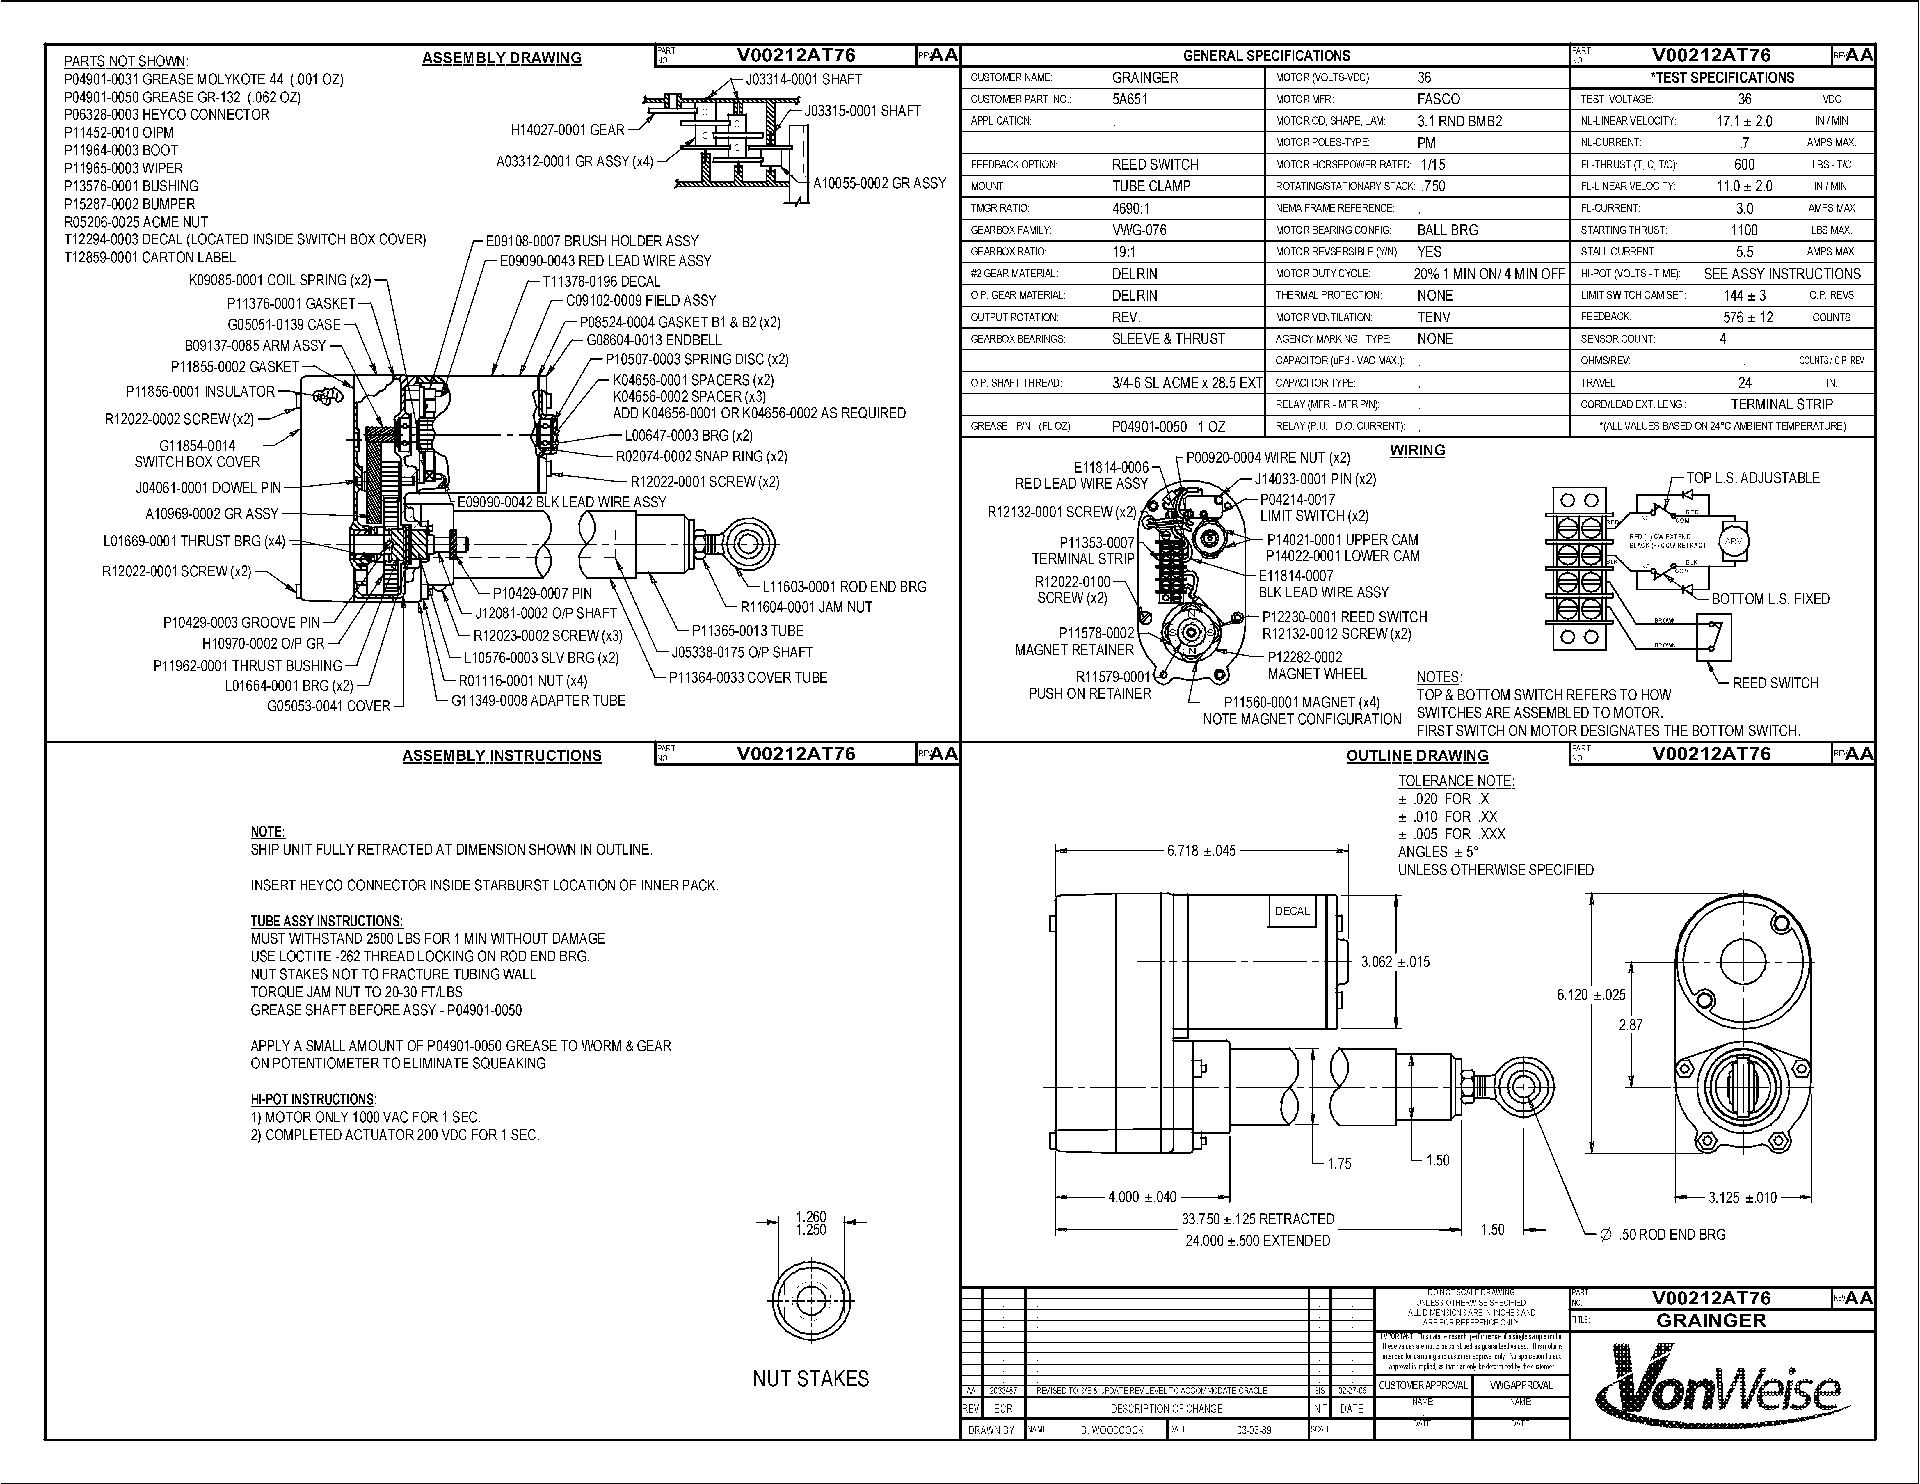 Cleaver Brooks Wiring Schematic Diagrams Simple Guide About Honeywell 3000 Diagram For A Sh3 Me